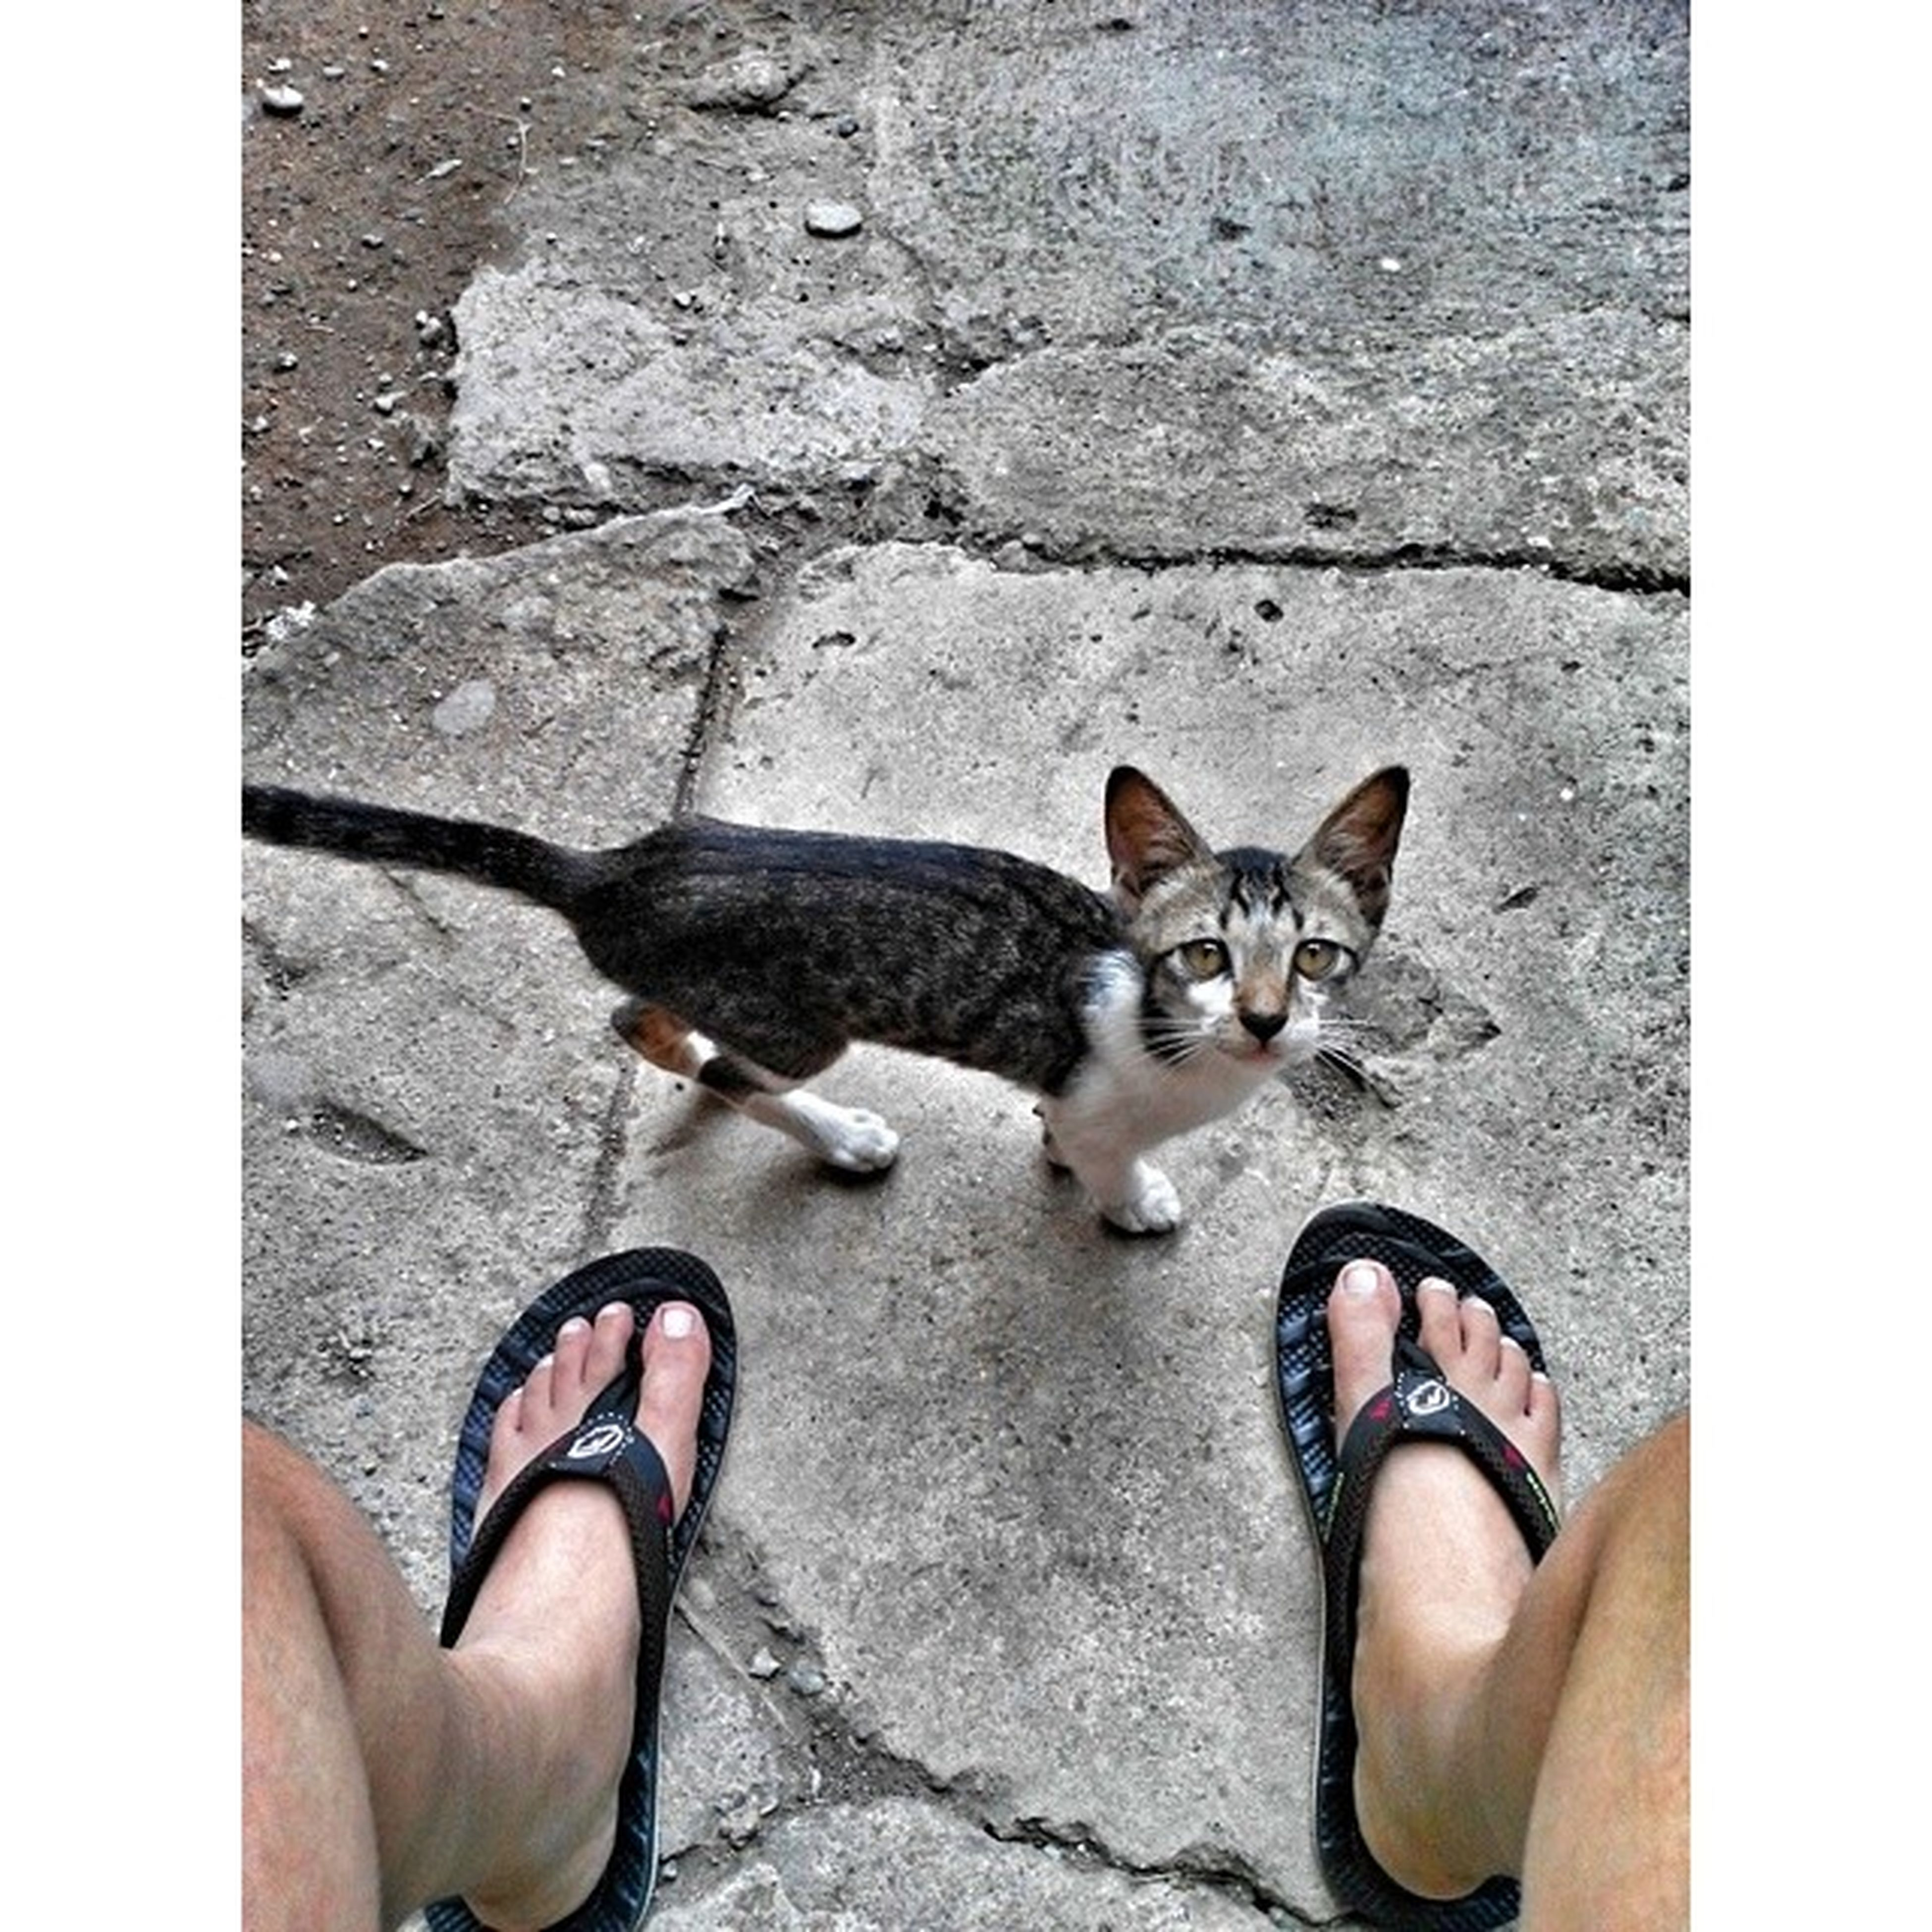 pets, domestic animals, animal themes, one animal, domestic cat, mammal, low section, high angle view, person, cat, street, shoe, personal perspective, auto post production filter, feline, transfer print, cobblestone